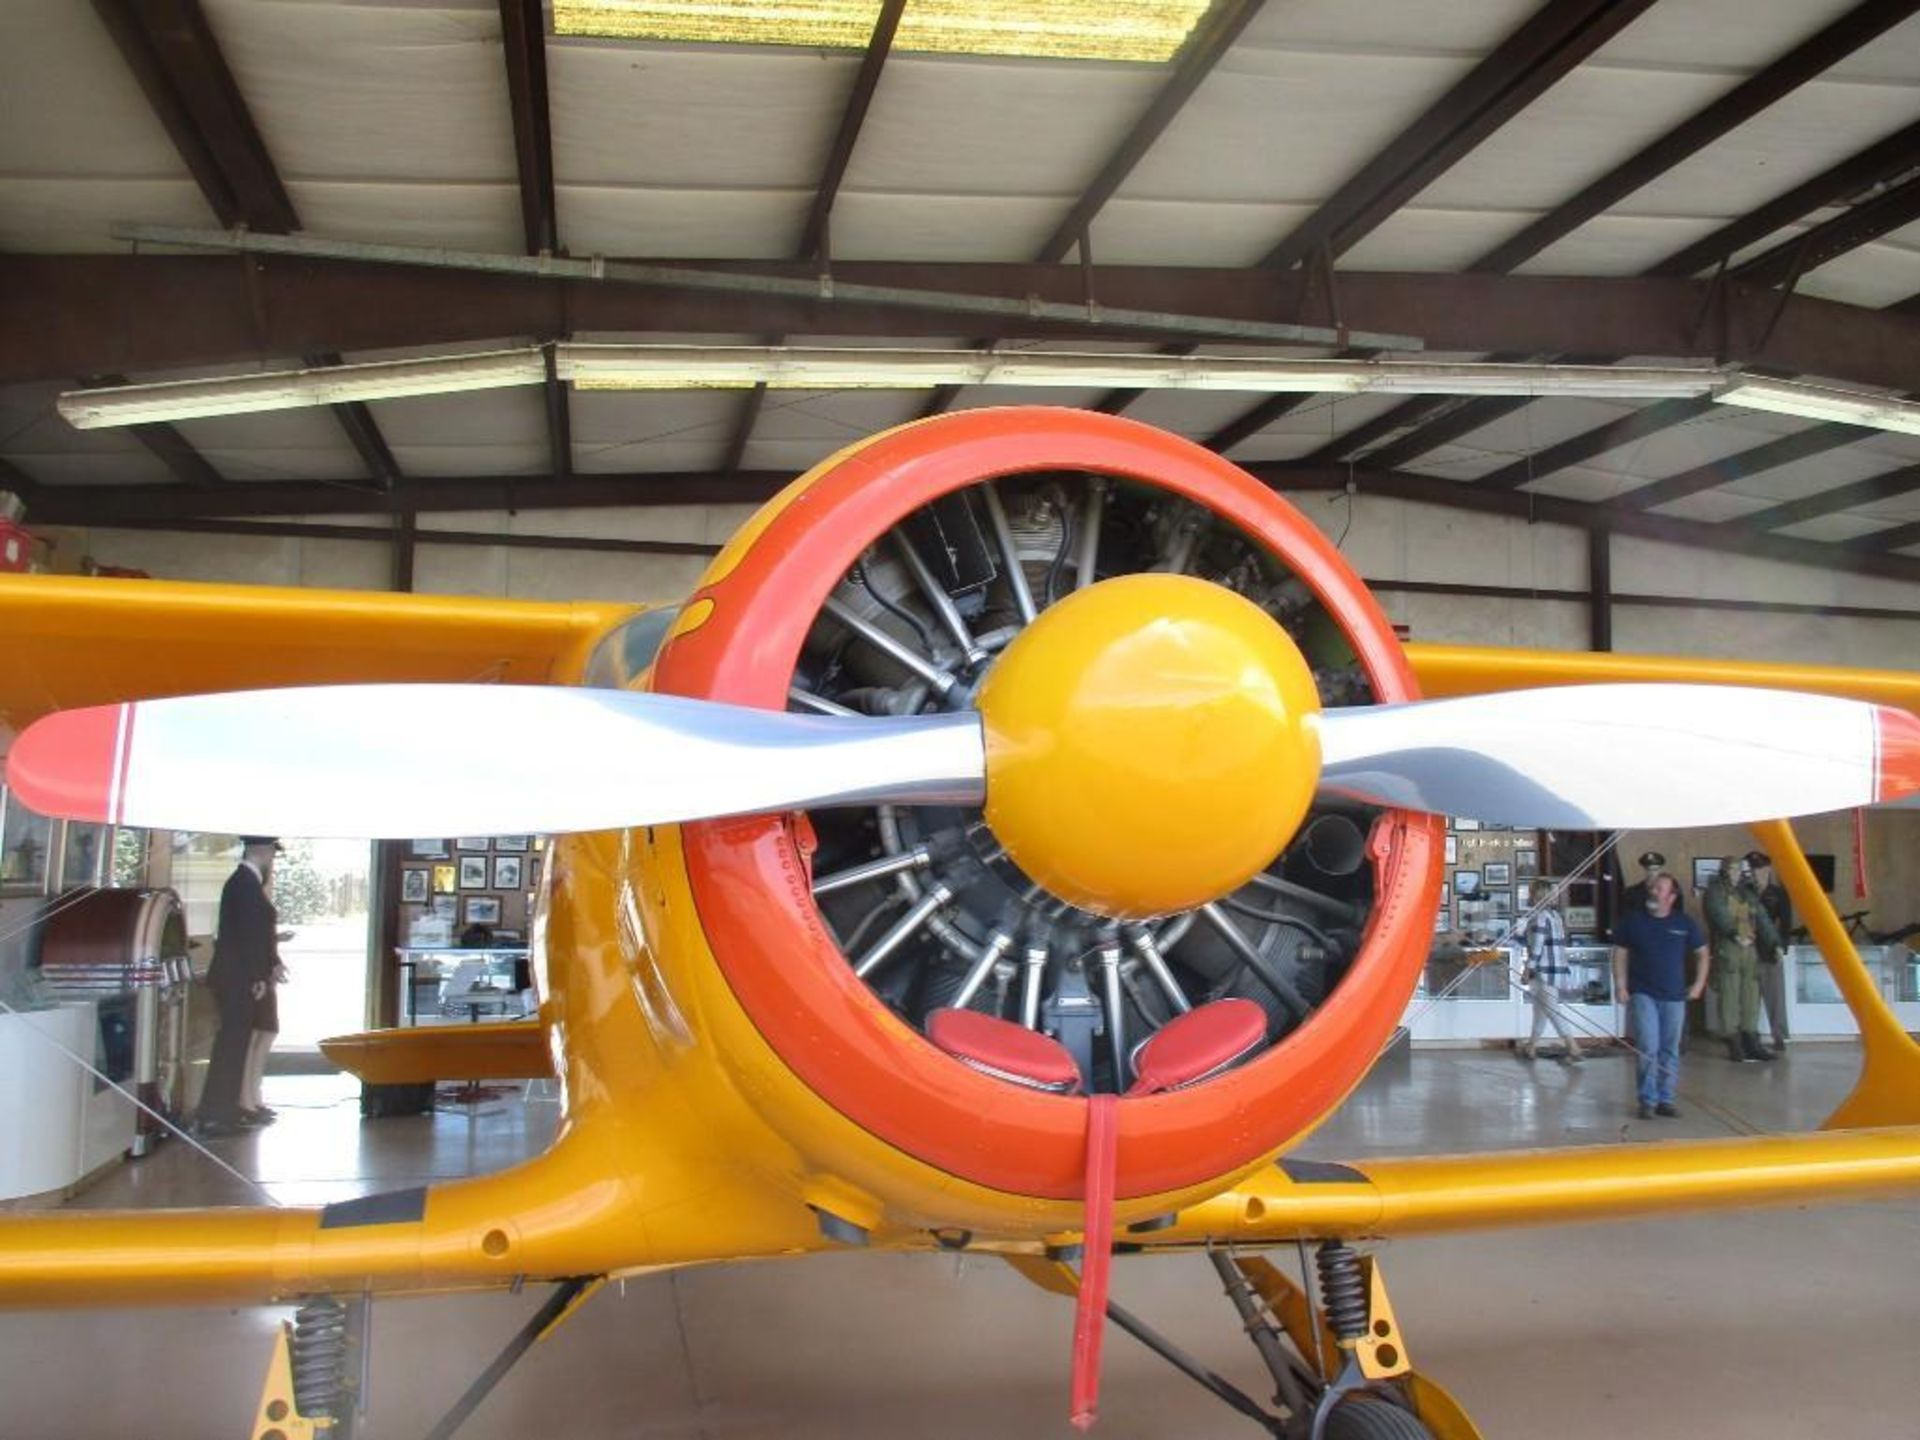 1947 BEECHCRAFT D-17S STAGGERWING N1196V S/N 6703 - Image 5 of 7